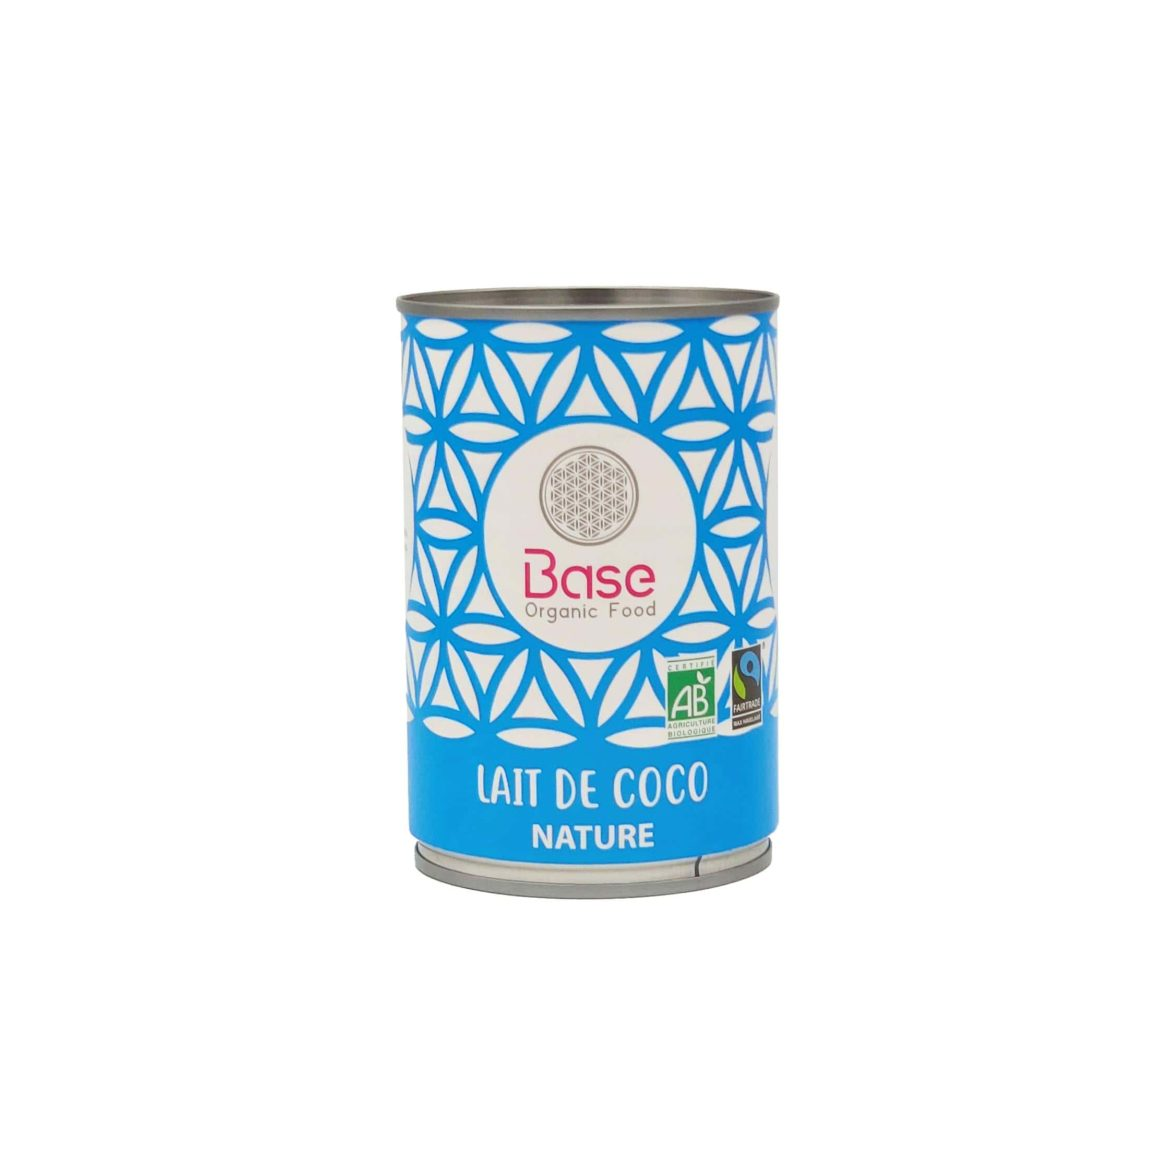 lait-de-coco-400ml-copie-min.jpg